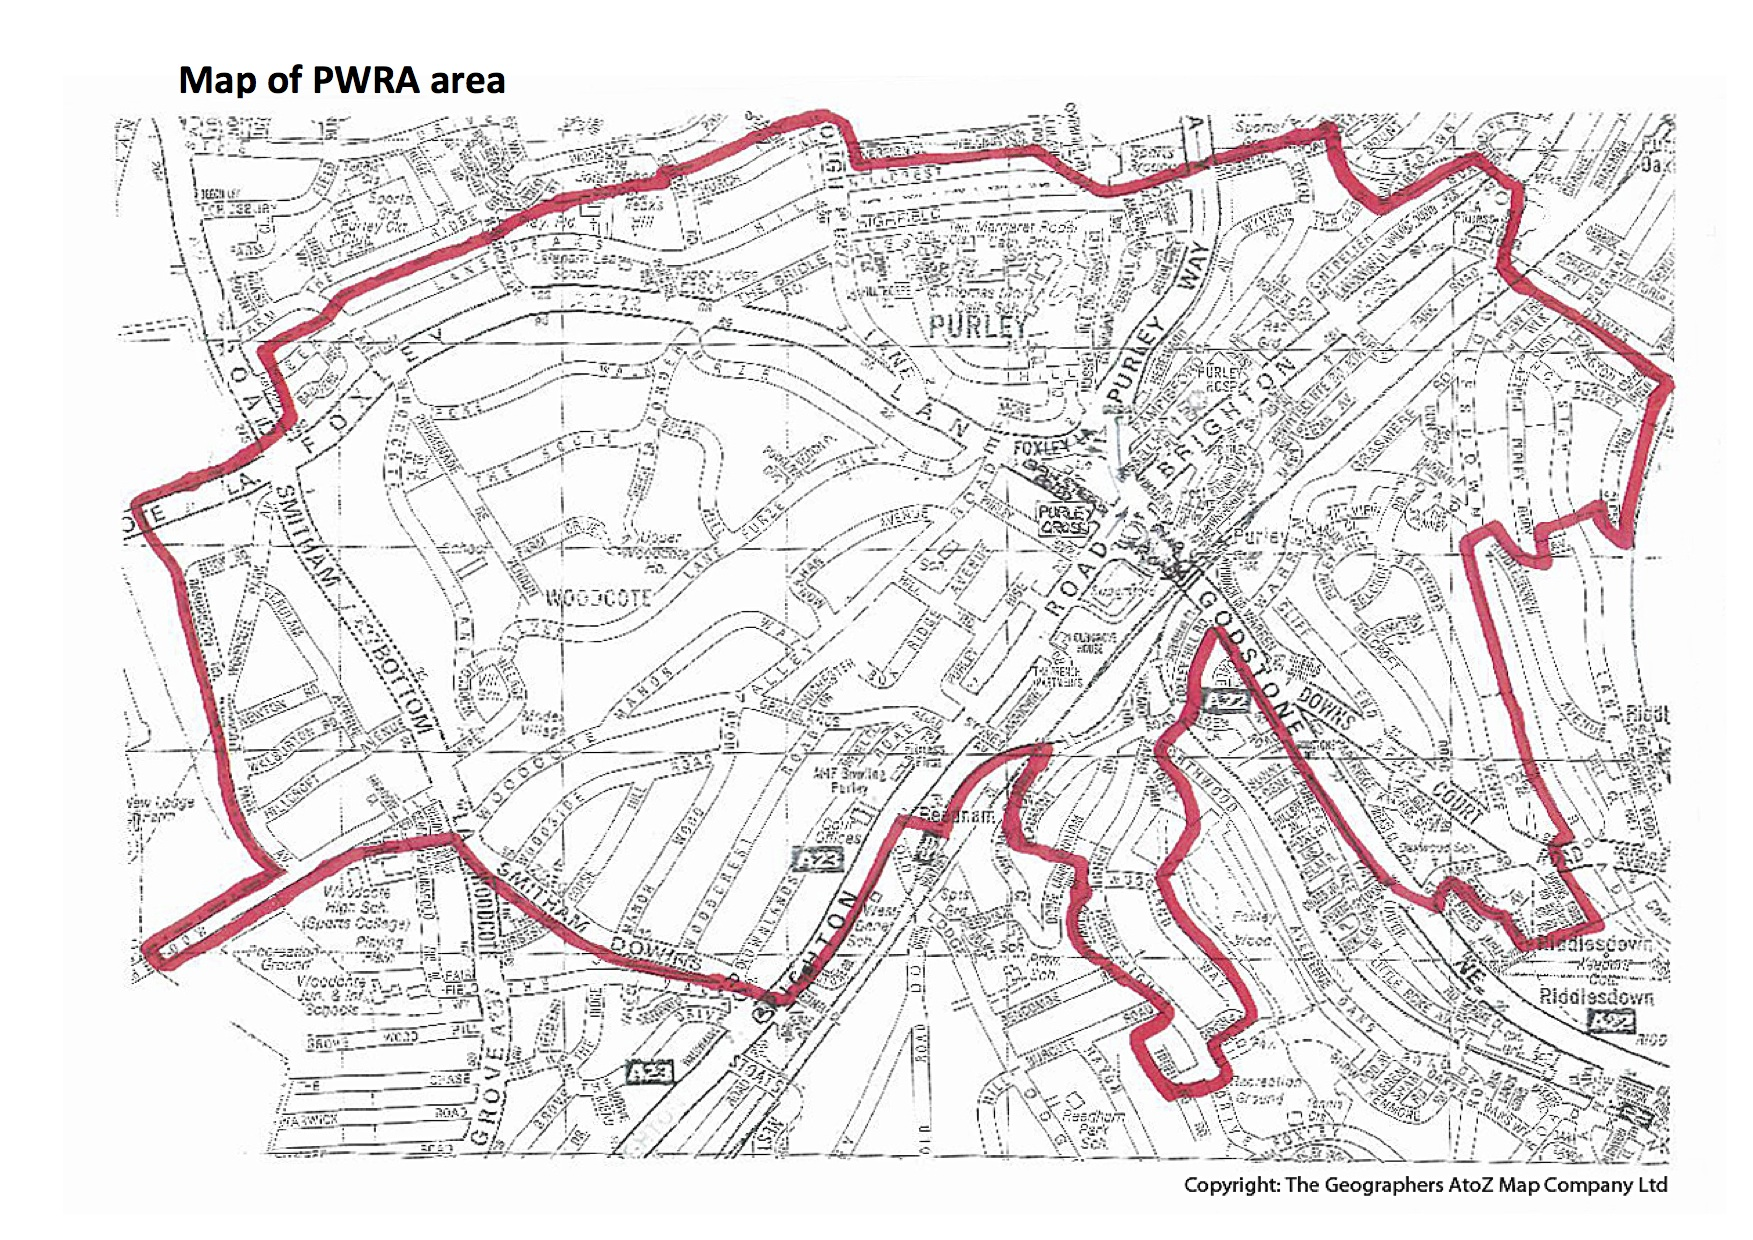 PWRA area map